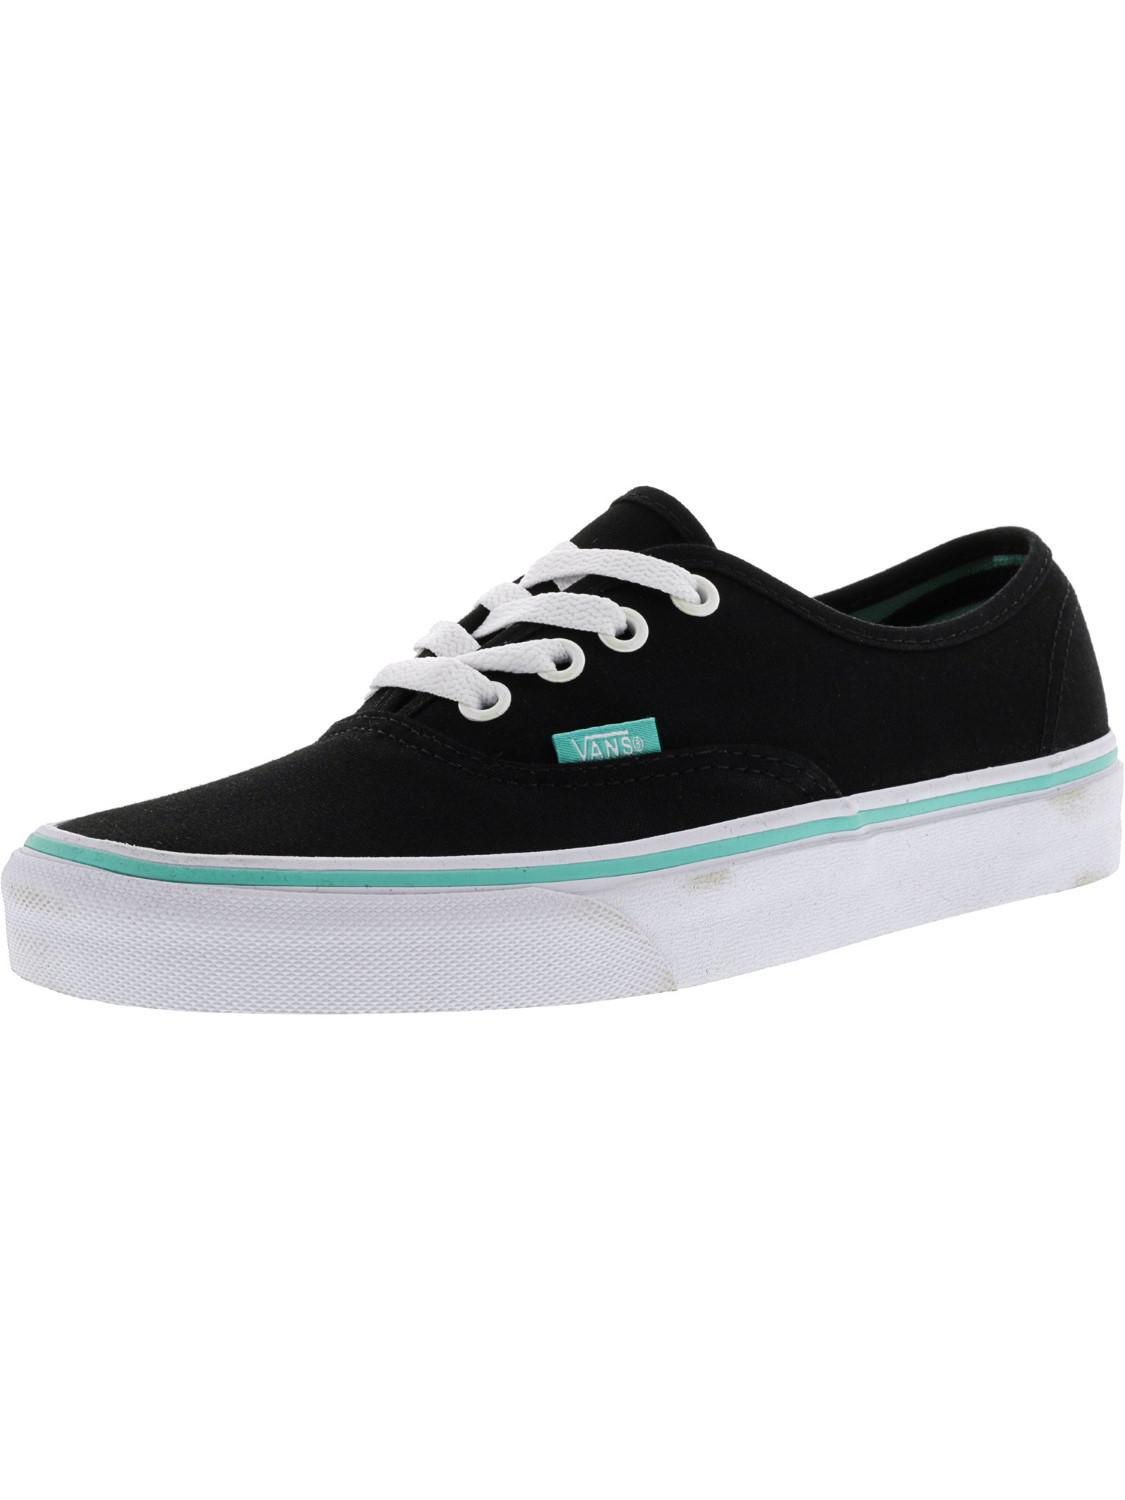 403af43f89 Lyst - Vans Authentic Iridescent Eyelets Ankle-high Canvas ...